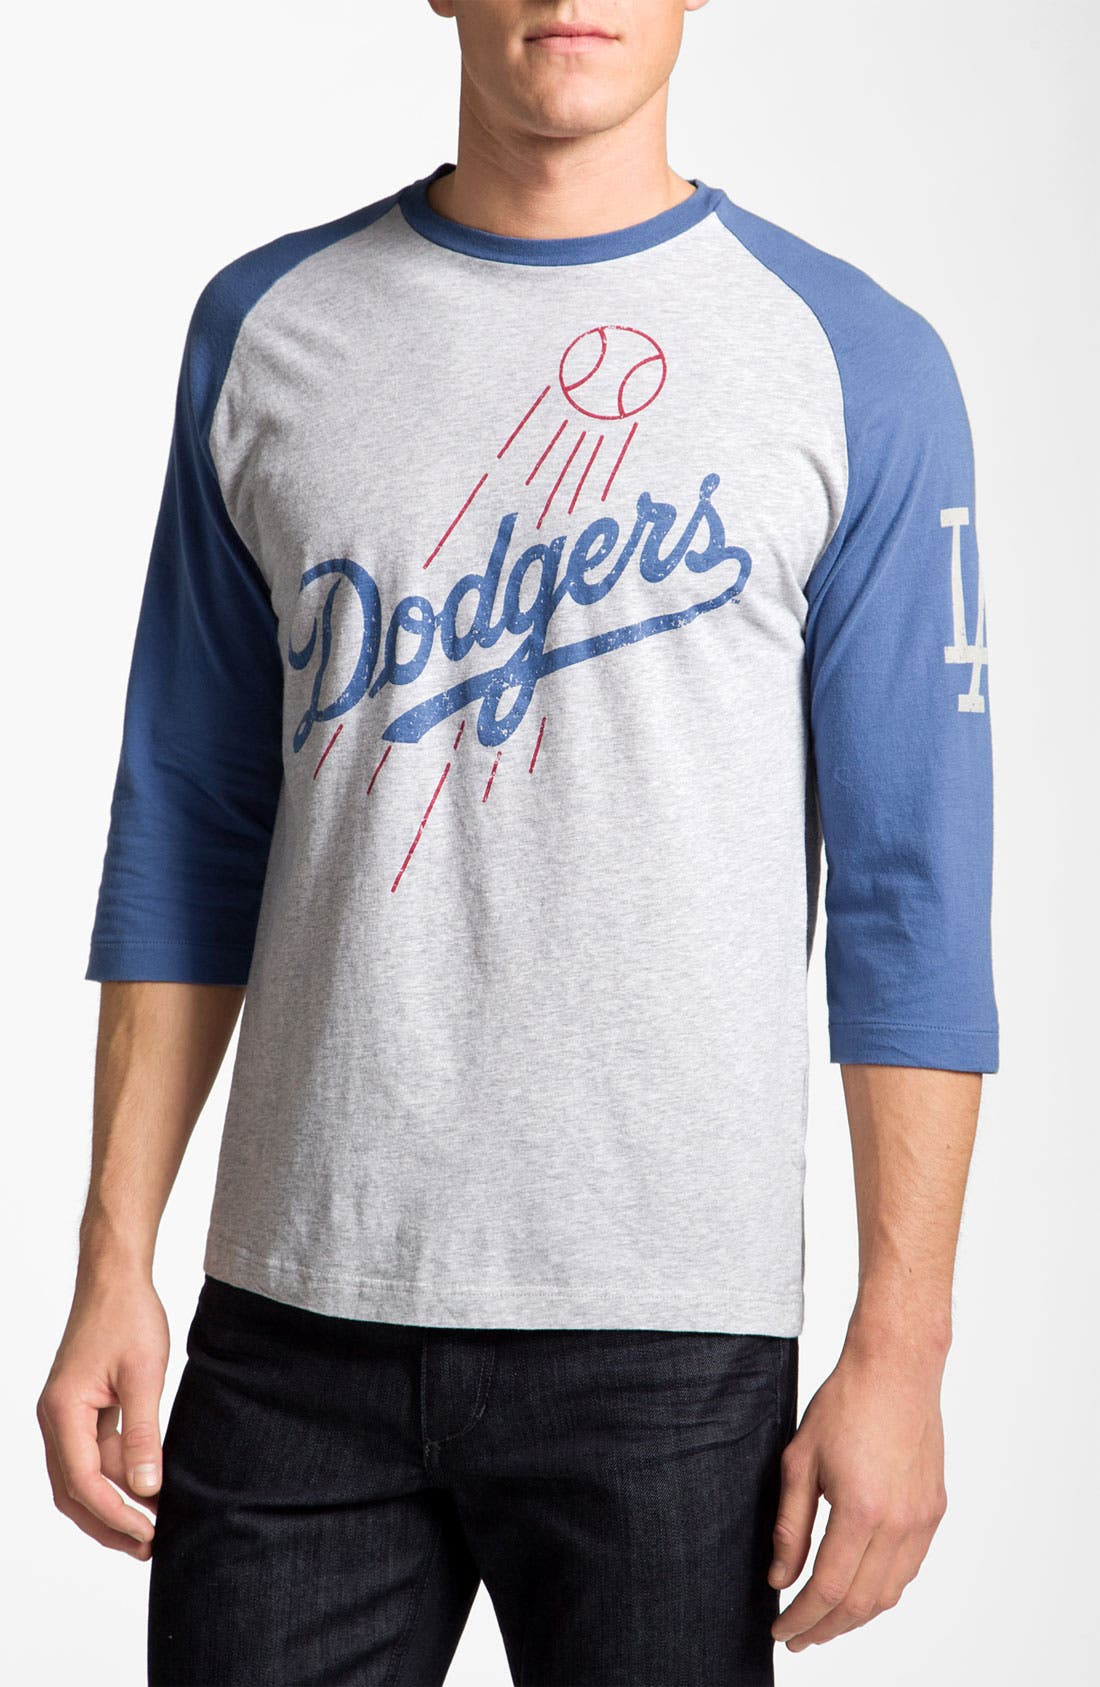 WRIGHT & DITSON 'Los Angeles Dodgers' Baseball T-Shirt